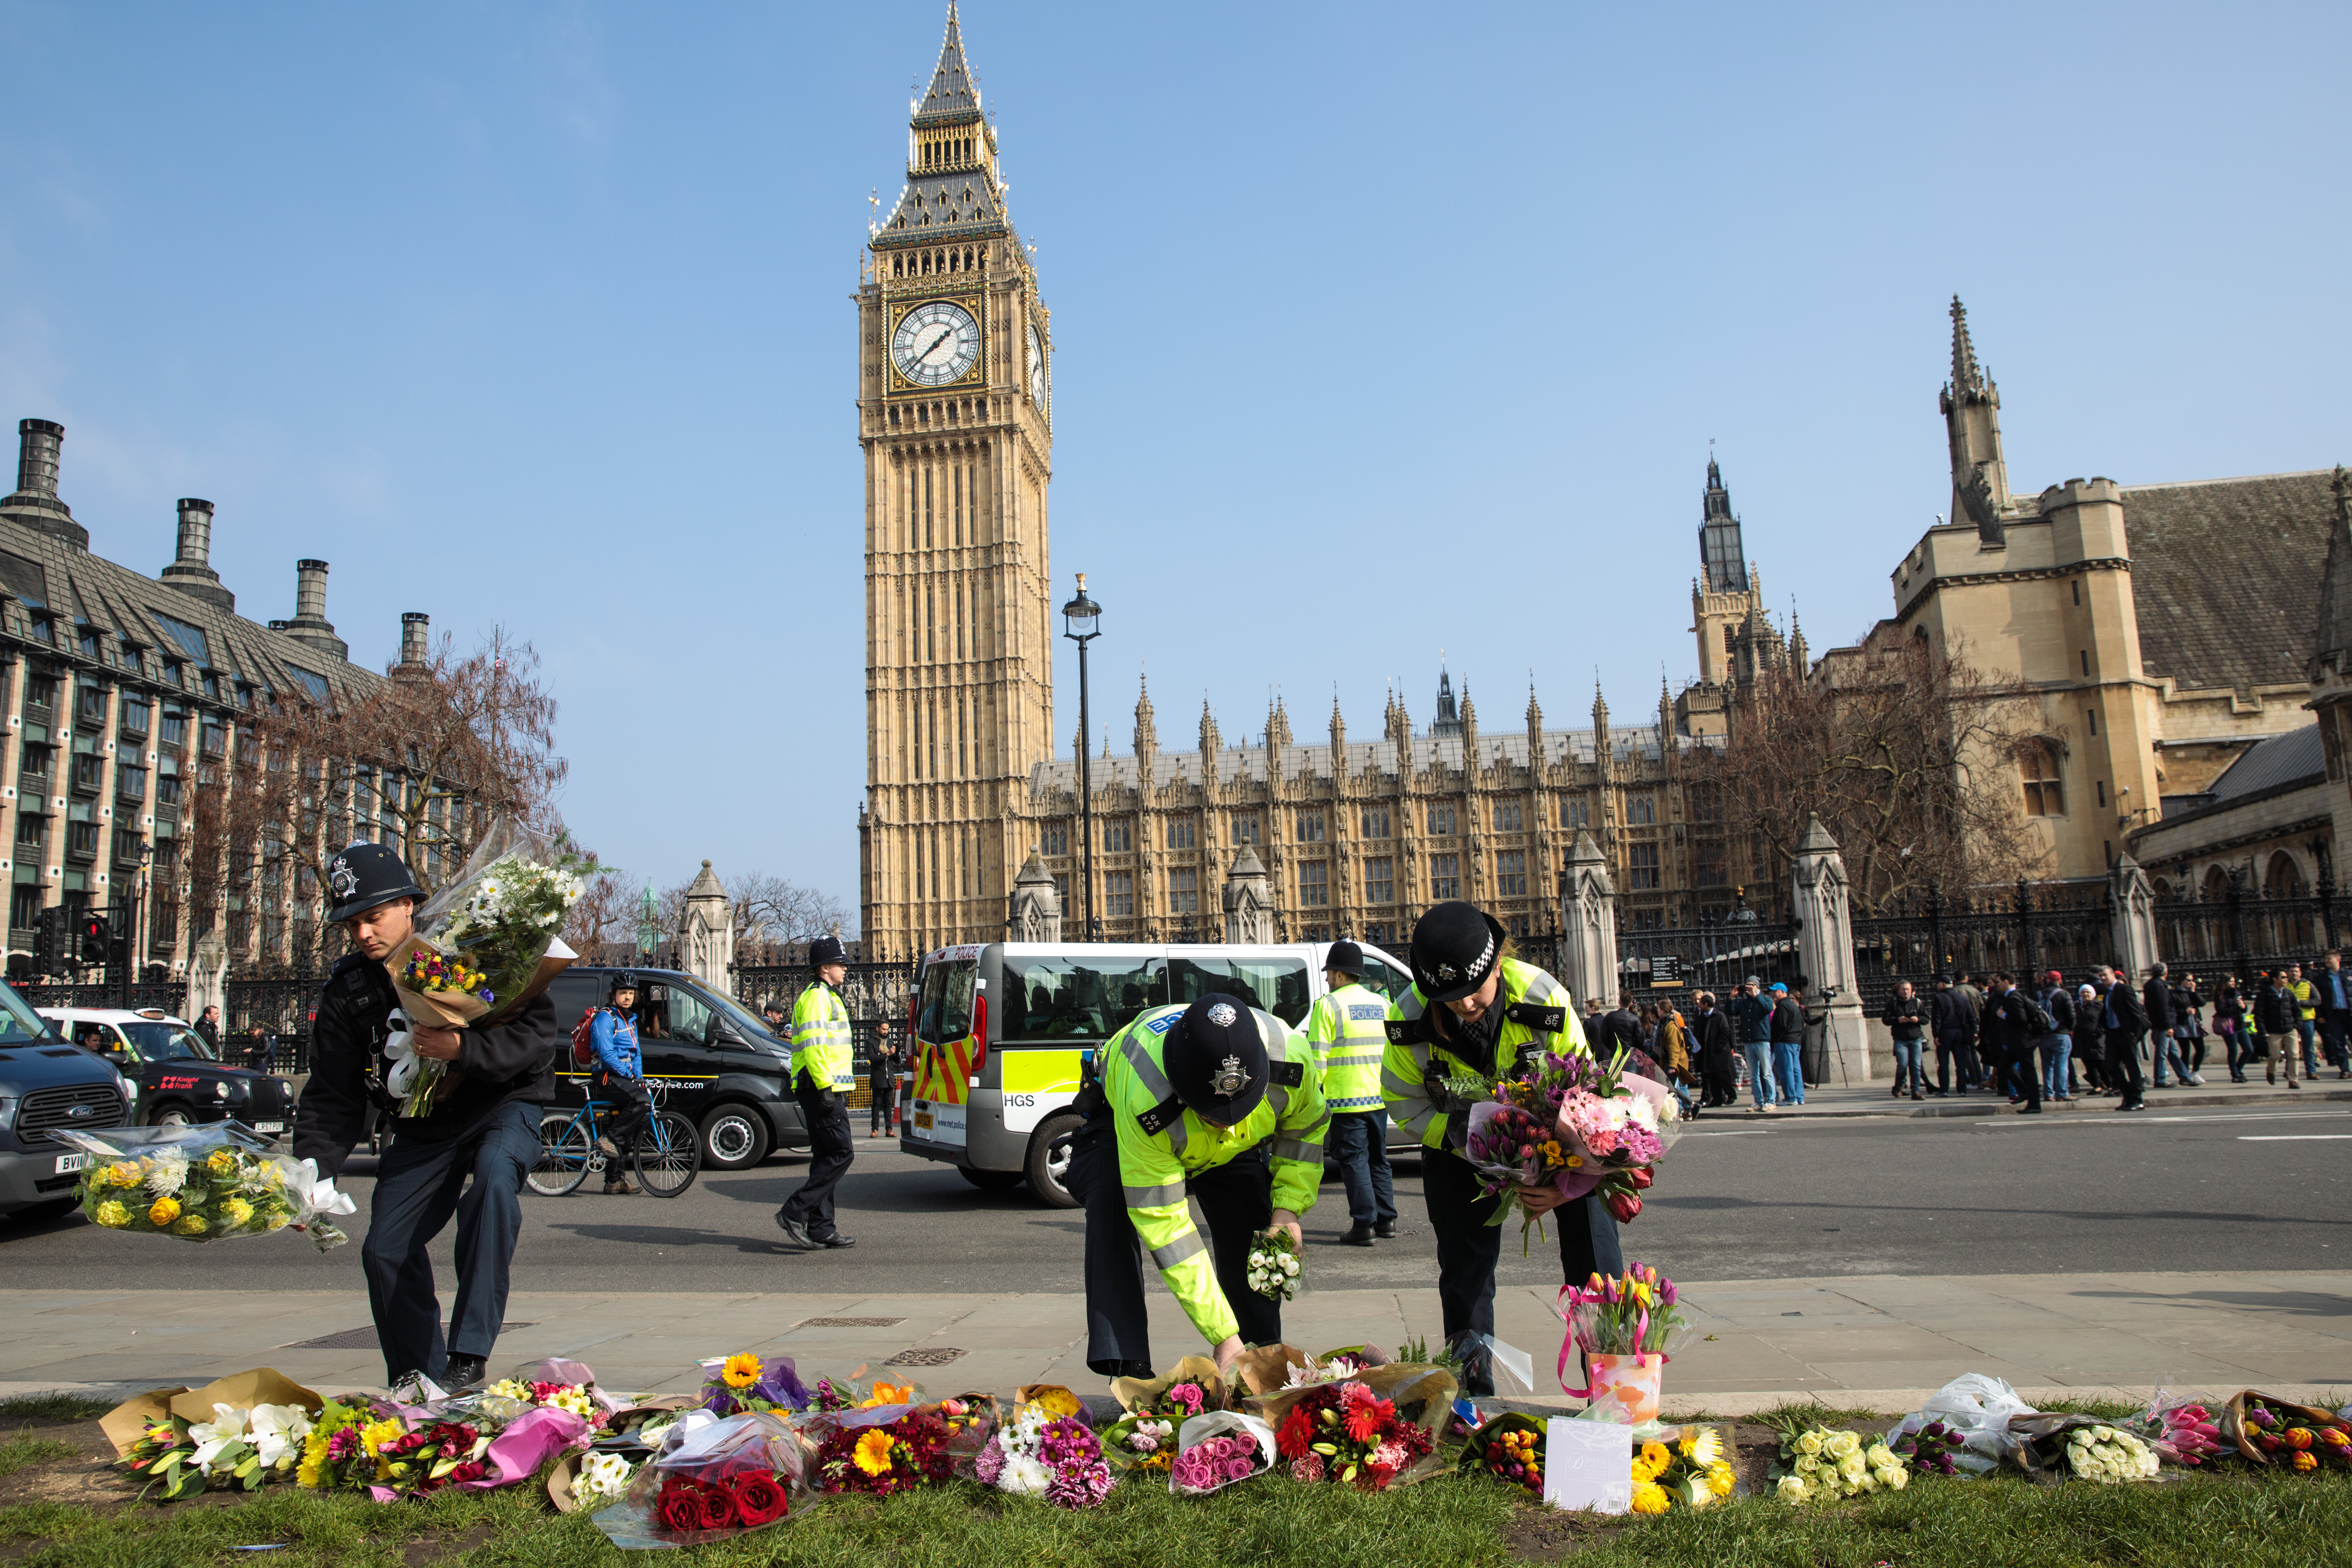 Police officers move floral tributes from outside the Houses of Parliament to Parliament Square after the March 22, 2017, attack on Westminster in London